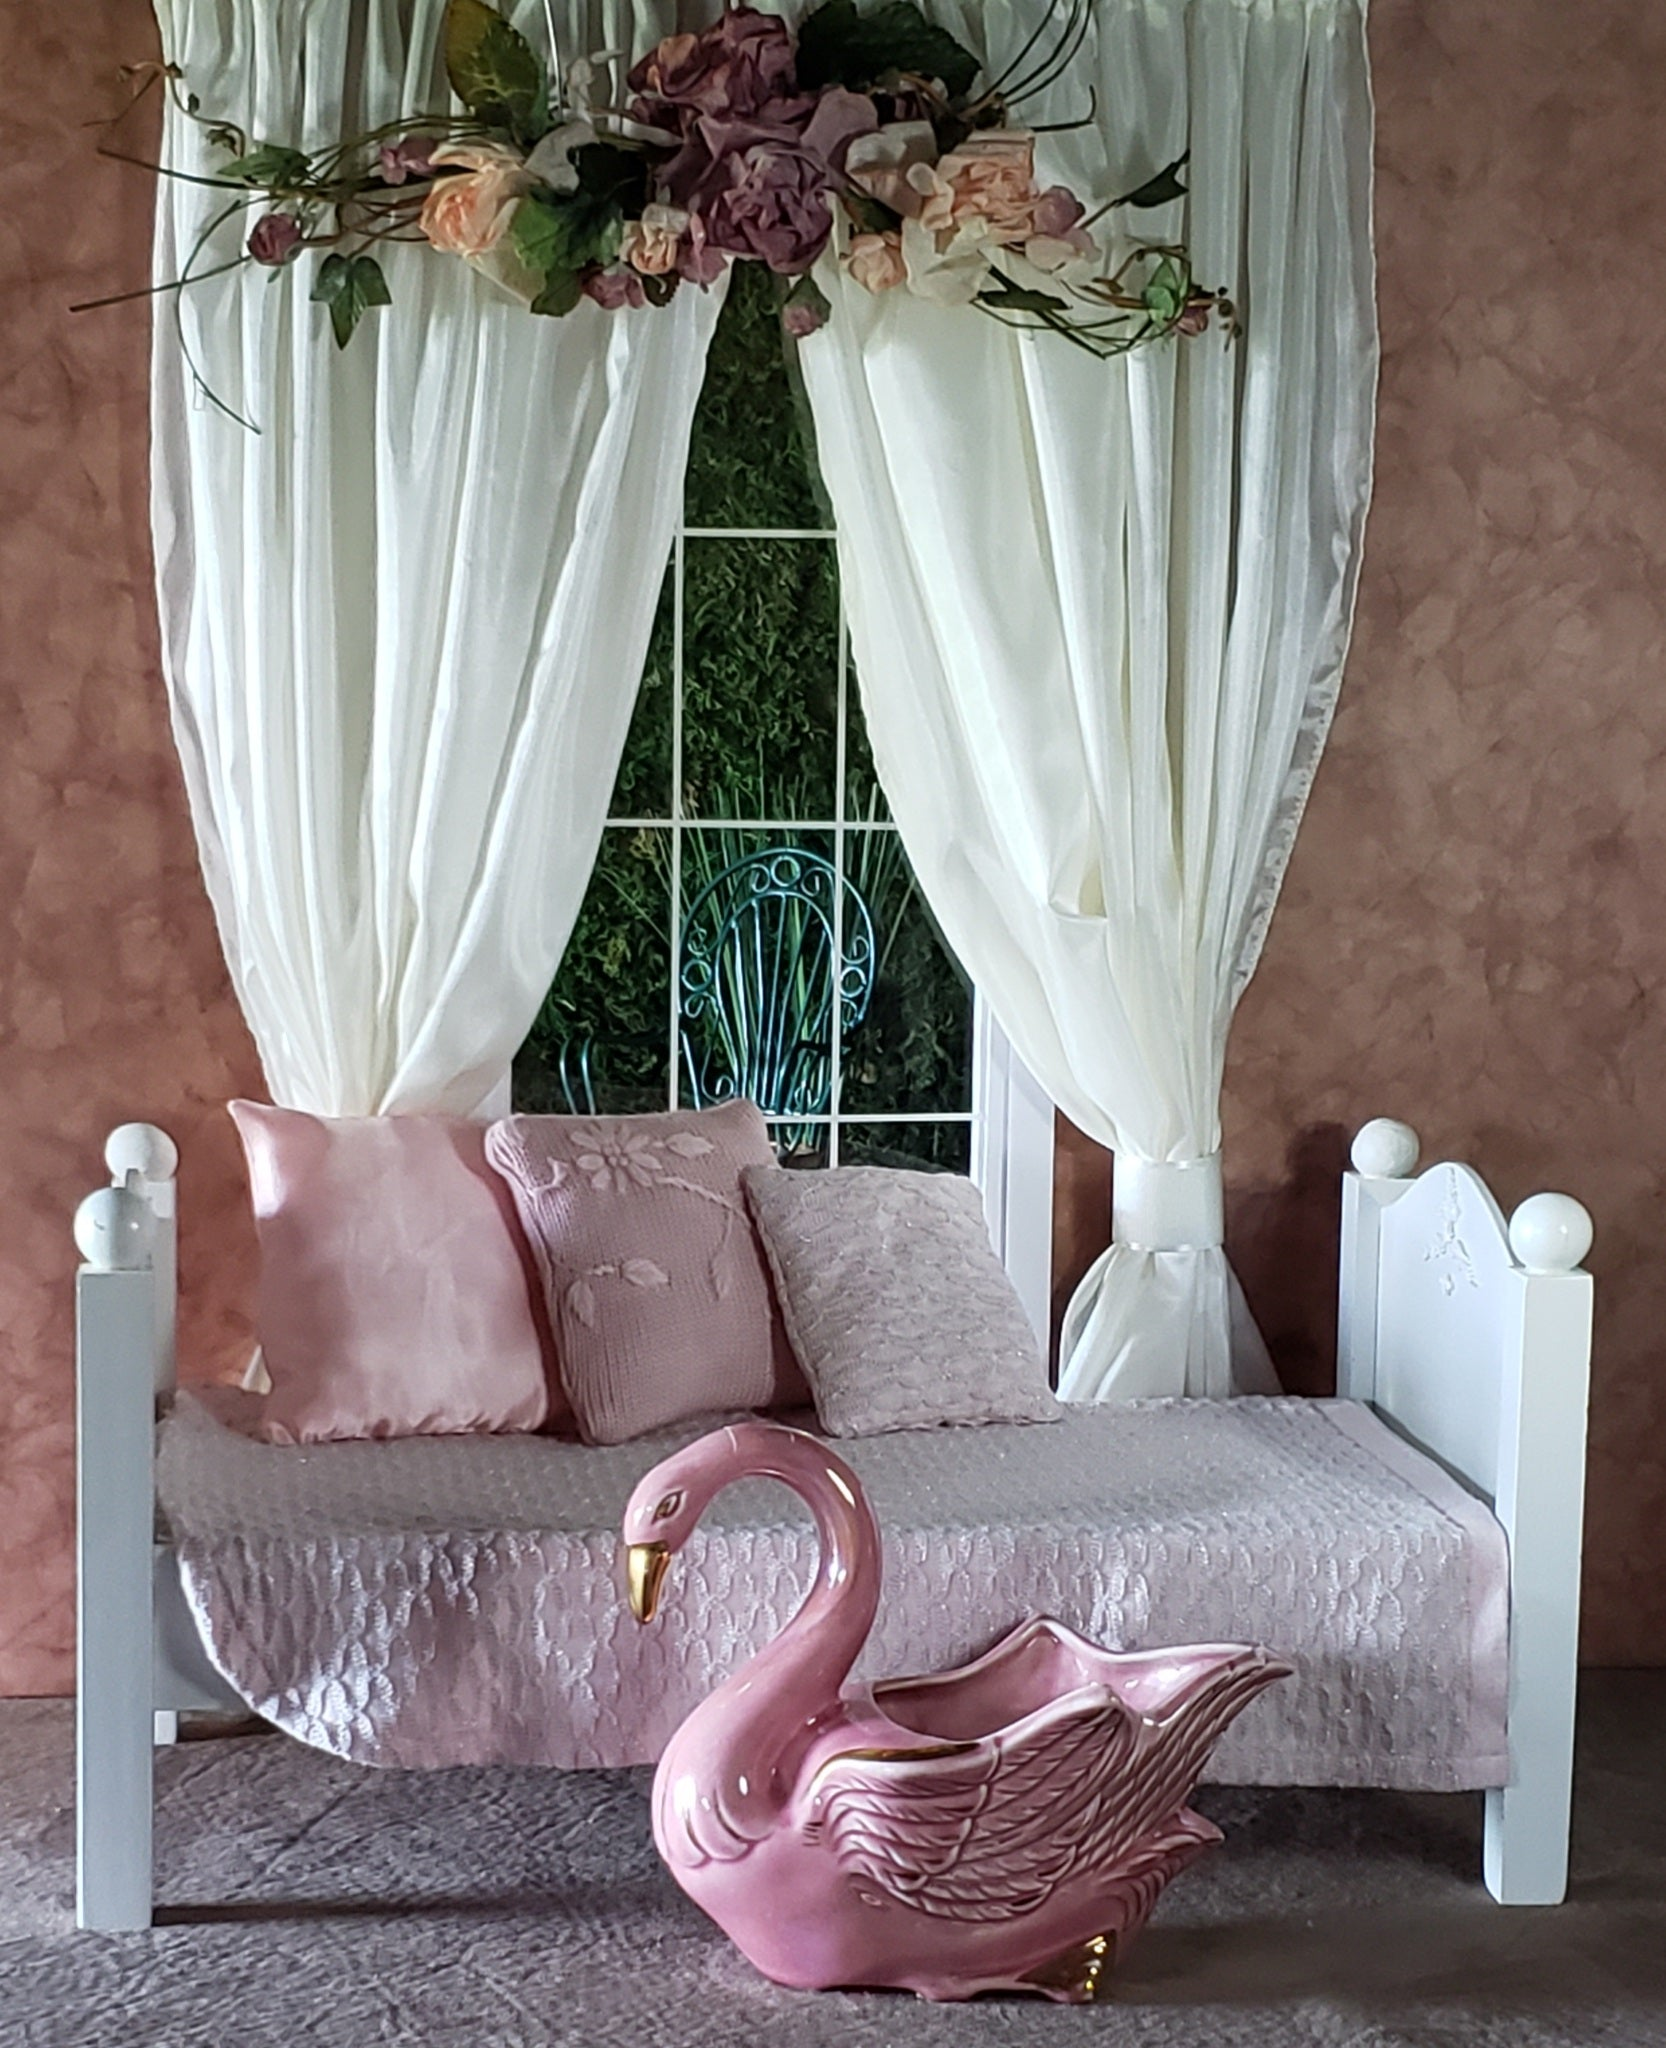 "Doll Bedding With Pillows and Pink Swan Storage Vase for 18"" Dolls fits American Girl"